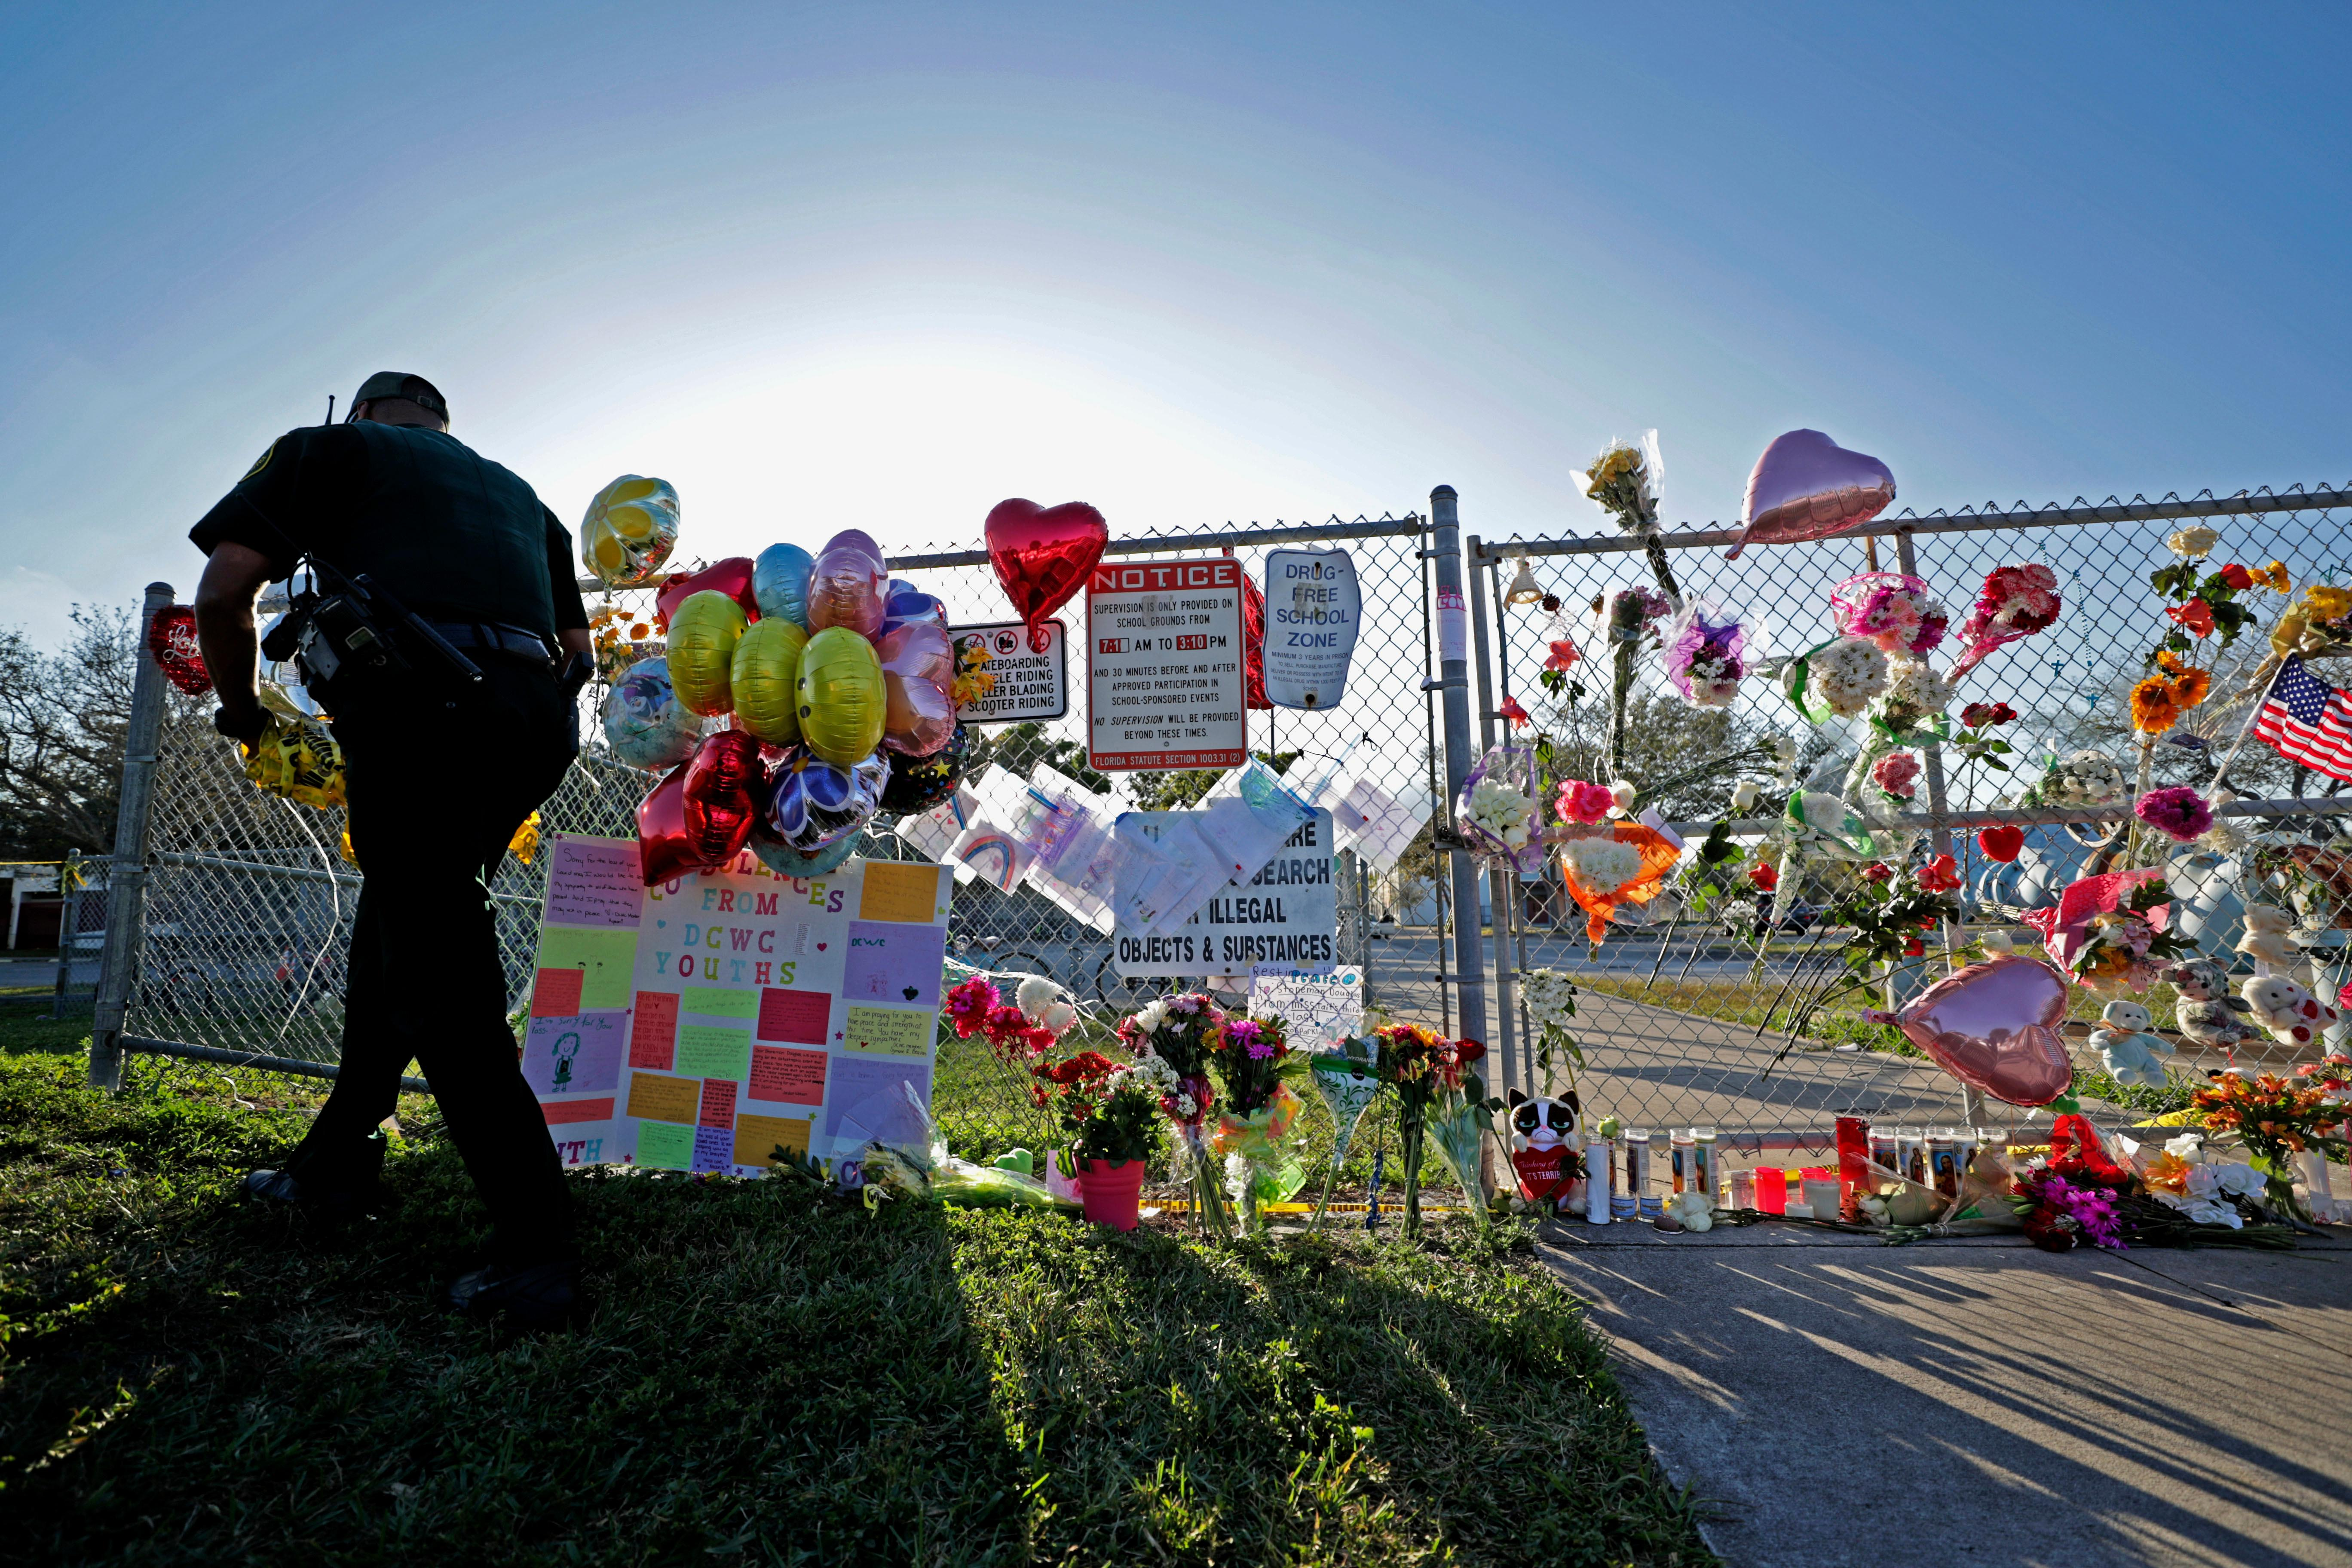 A Broward County Sheriff's Office deputy removes police tape from a makeshift memorial at Marjory Stoneman Douglas High School in Parkland, Fla., Sunday, Feb. 18, 2018. Nikolas Cruz, a former student, was charged with 17 counts of premeditated murder on Thursday. (John McCall/South Florida Sun-Sentinel via AP)